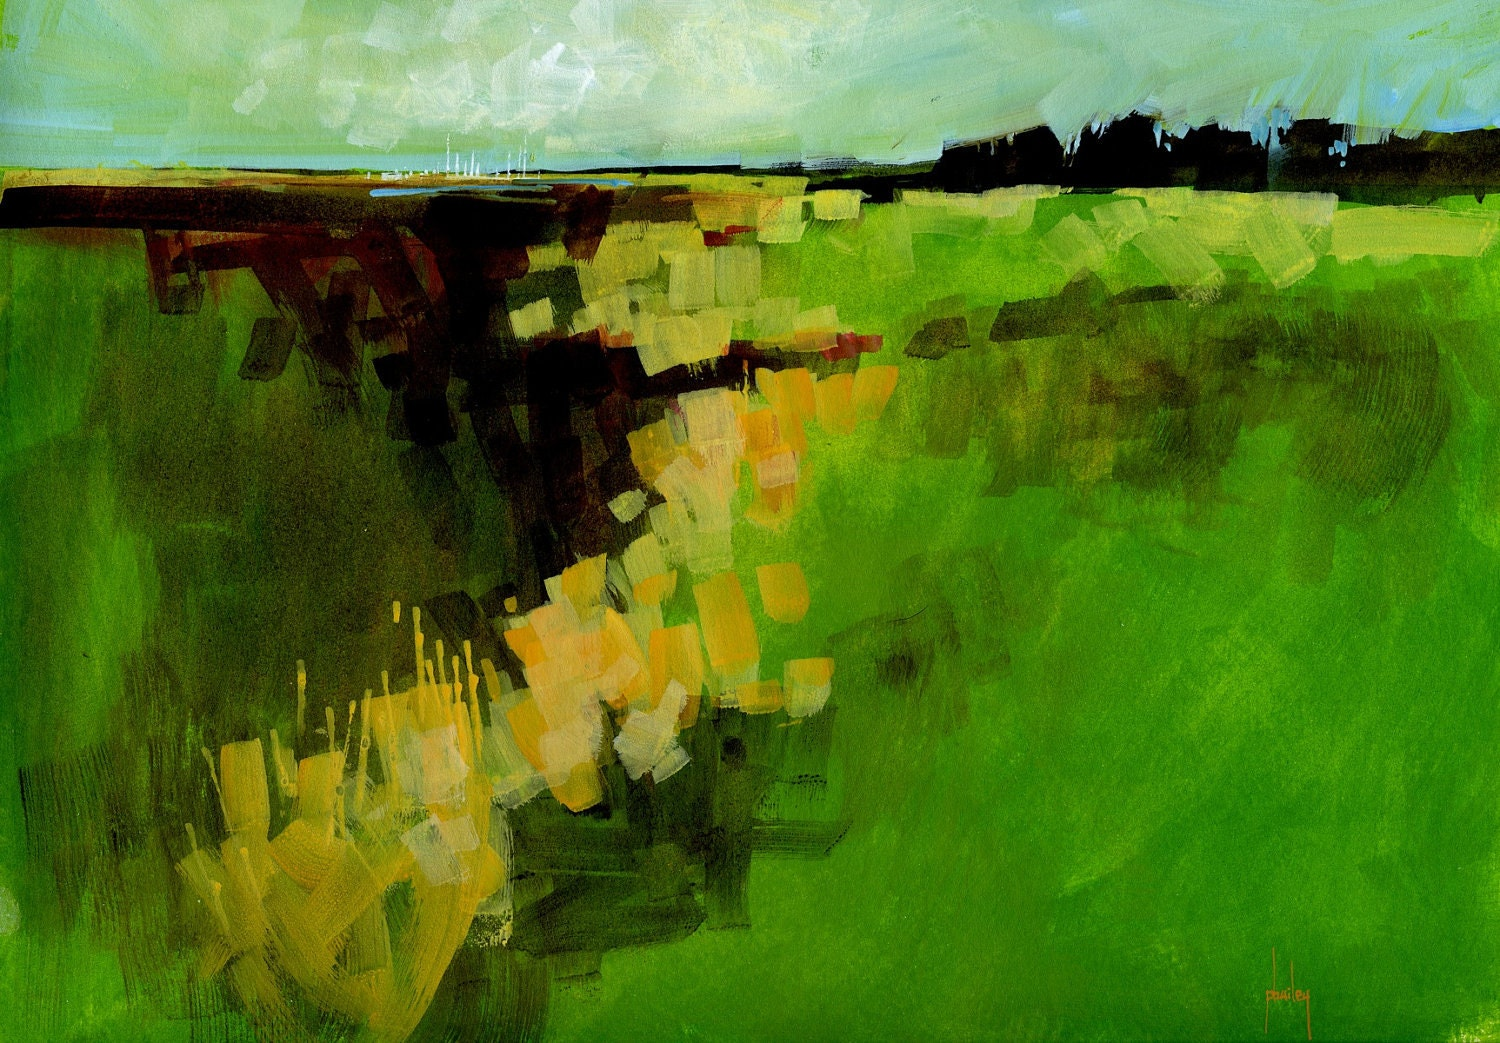 Abstract Landscape Paintings : Original landscape painting semi-abstract by PaulBaileyArt